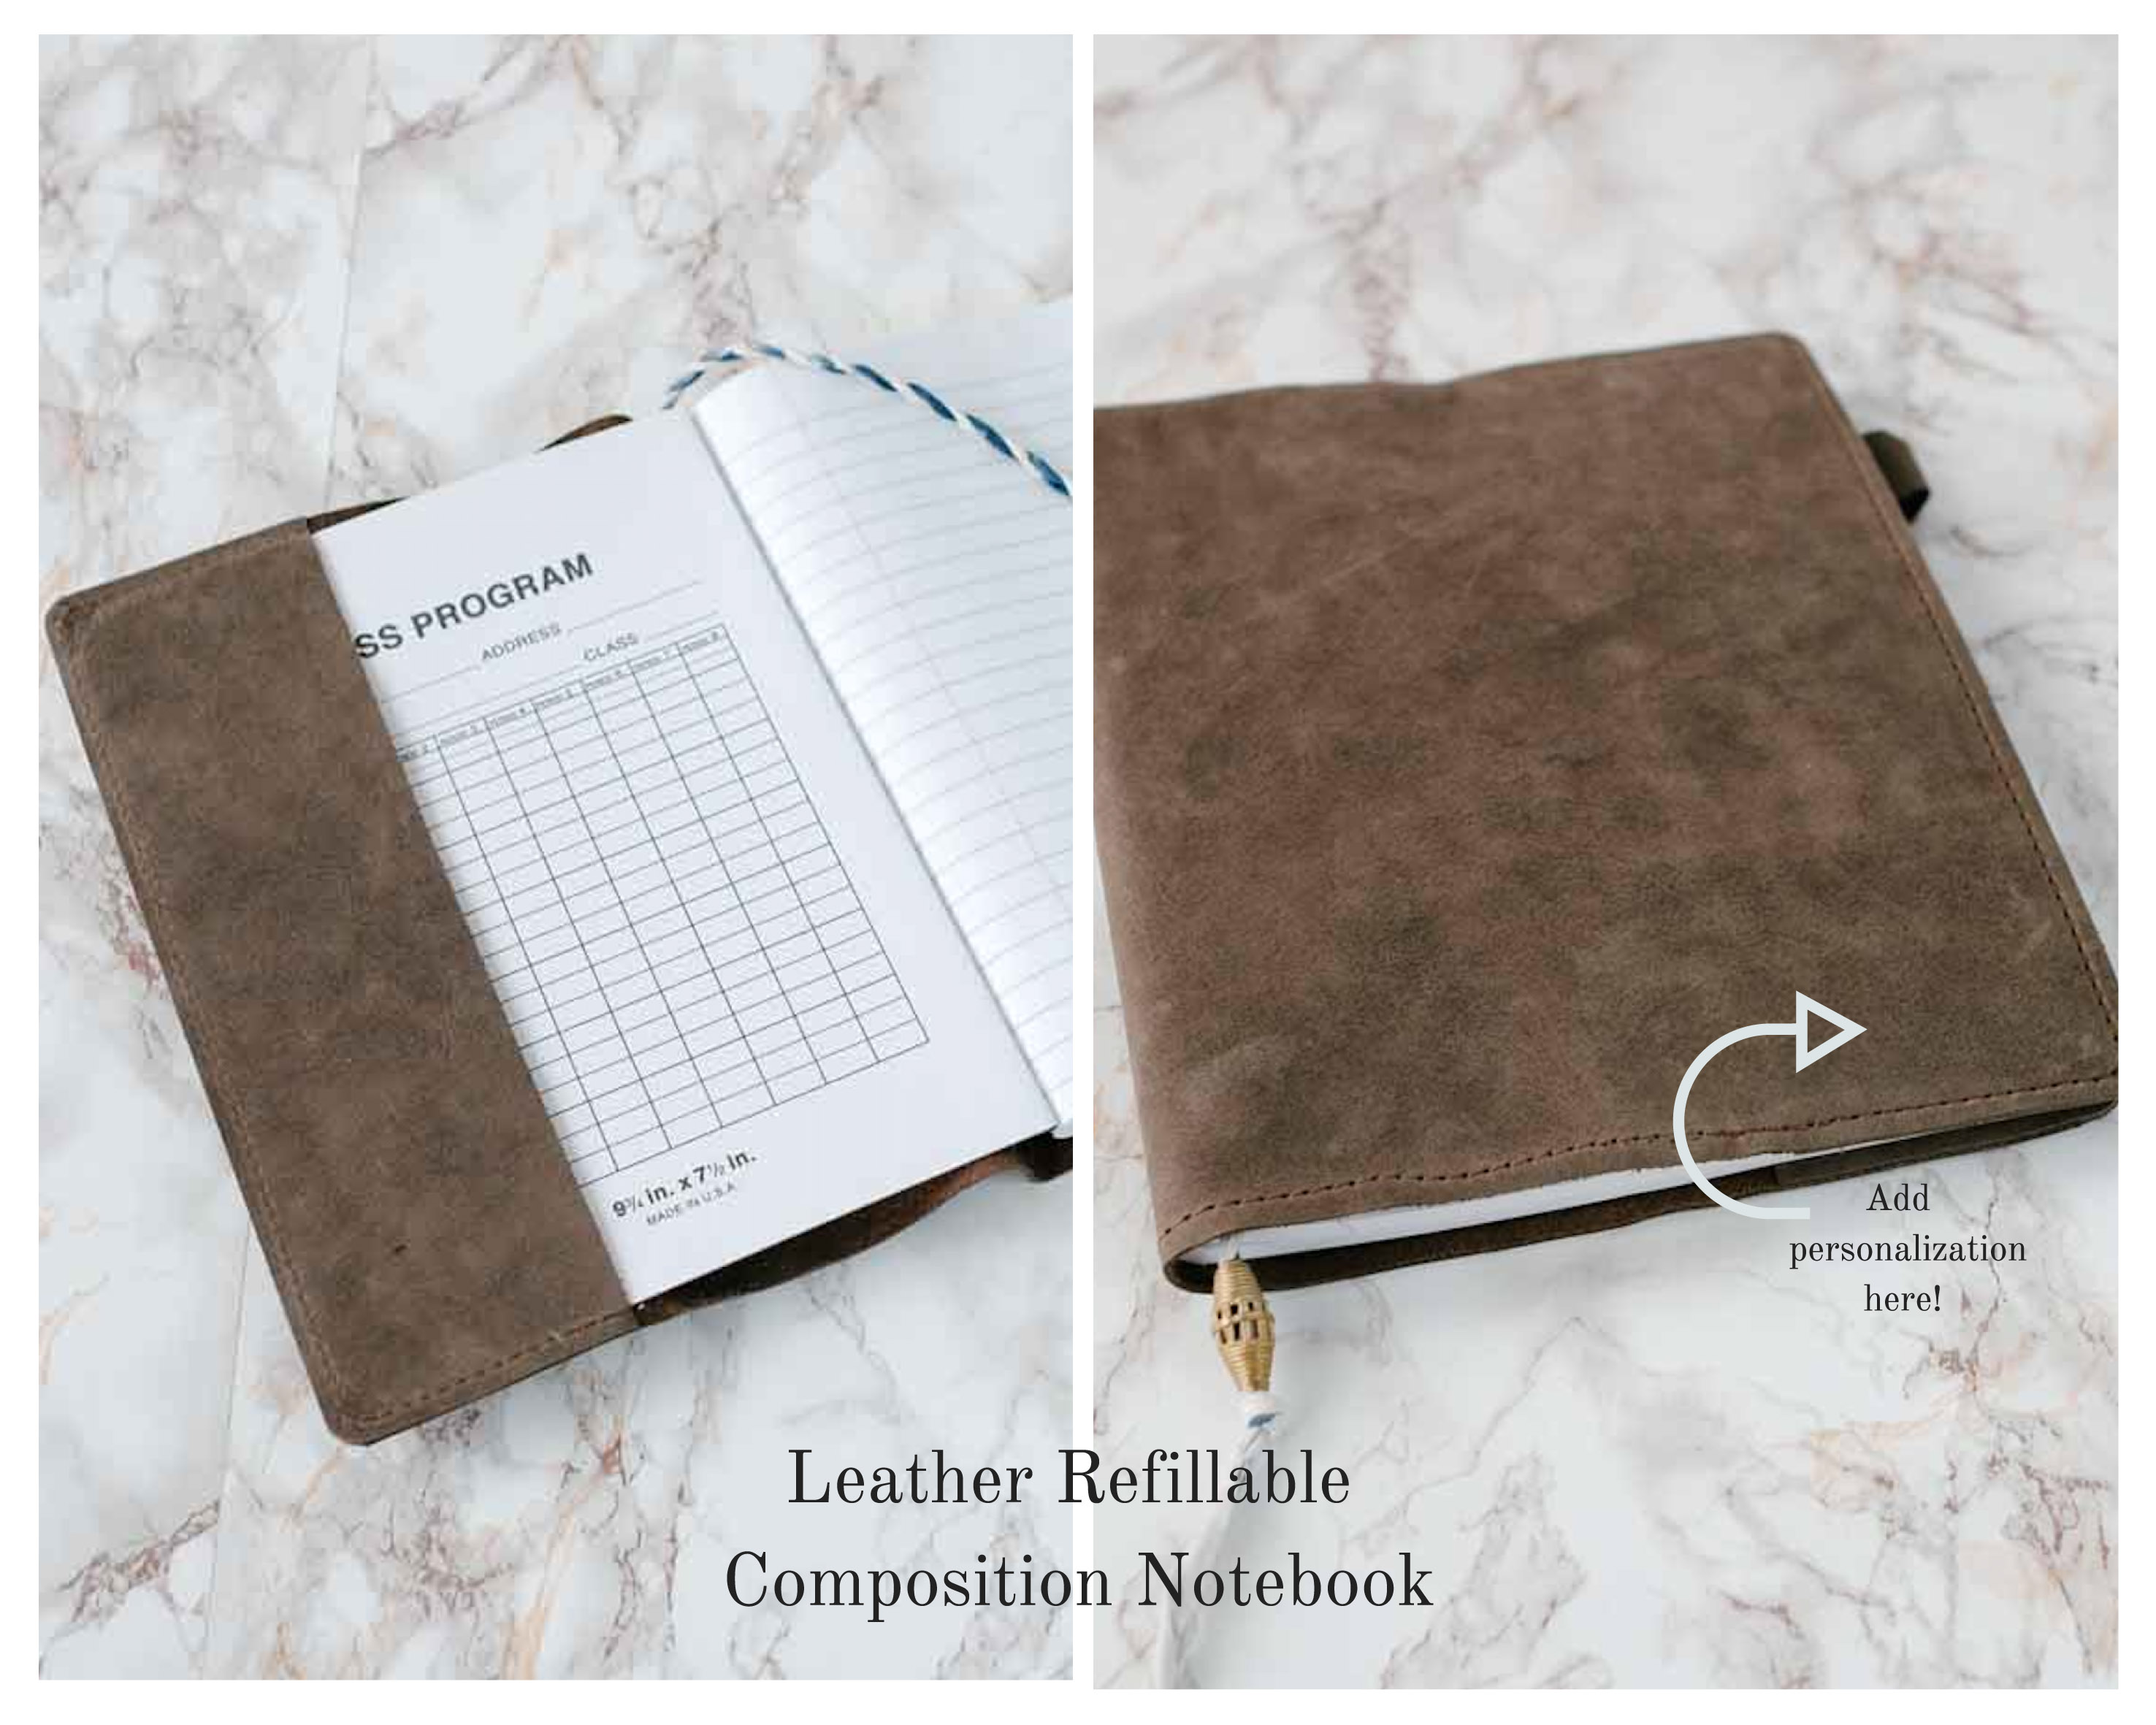 Best-refillable-journals_blue-sky-papers